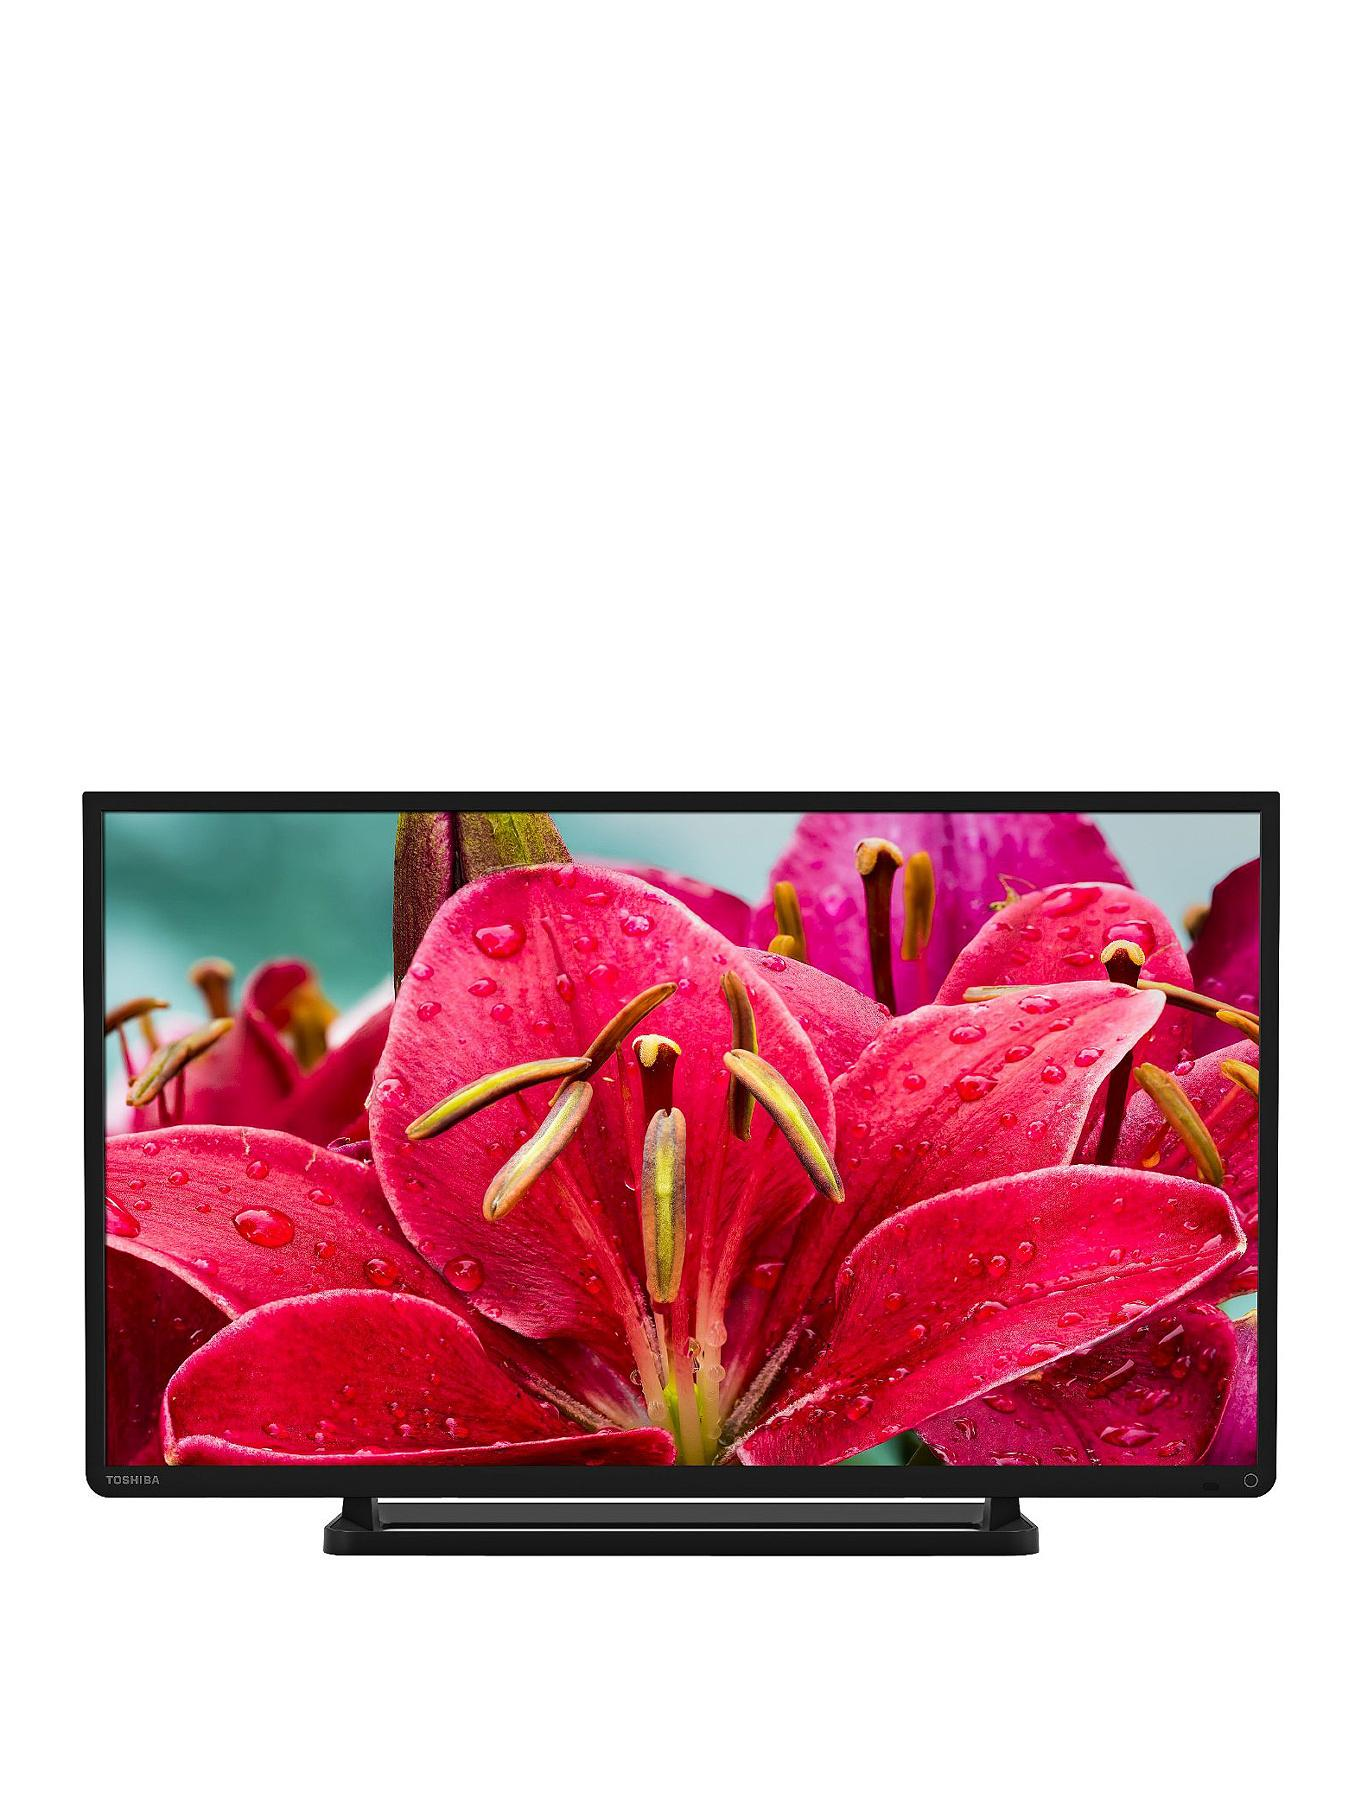 Toshiba 32W2433DB 32-inch Widescreen HD LED TV with Freeview